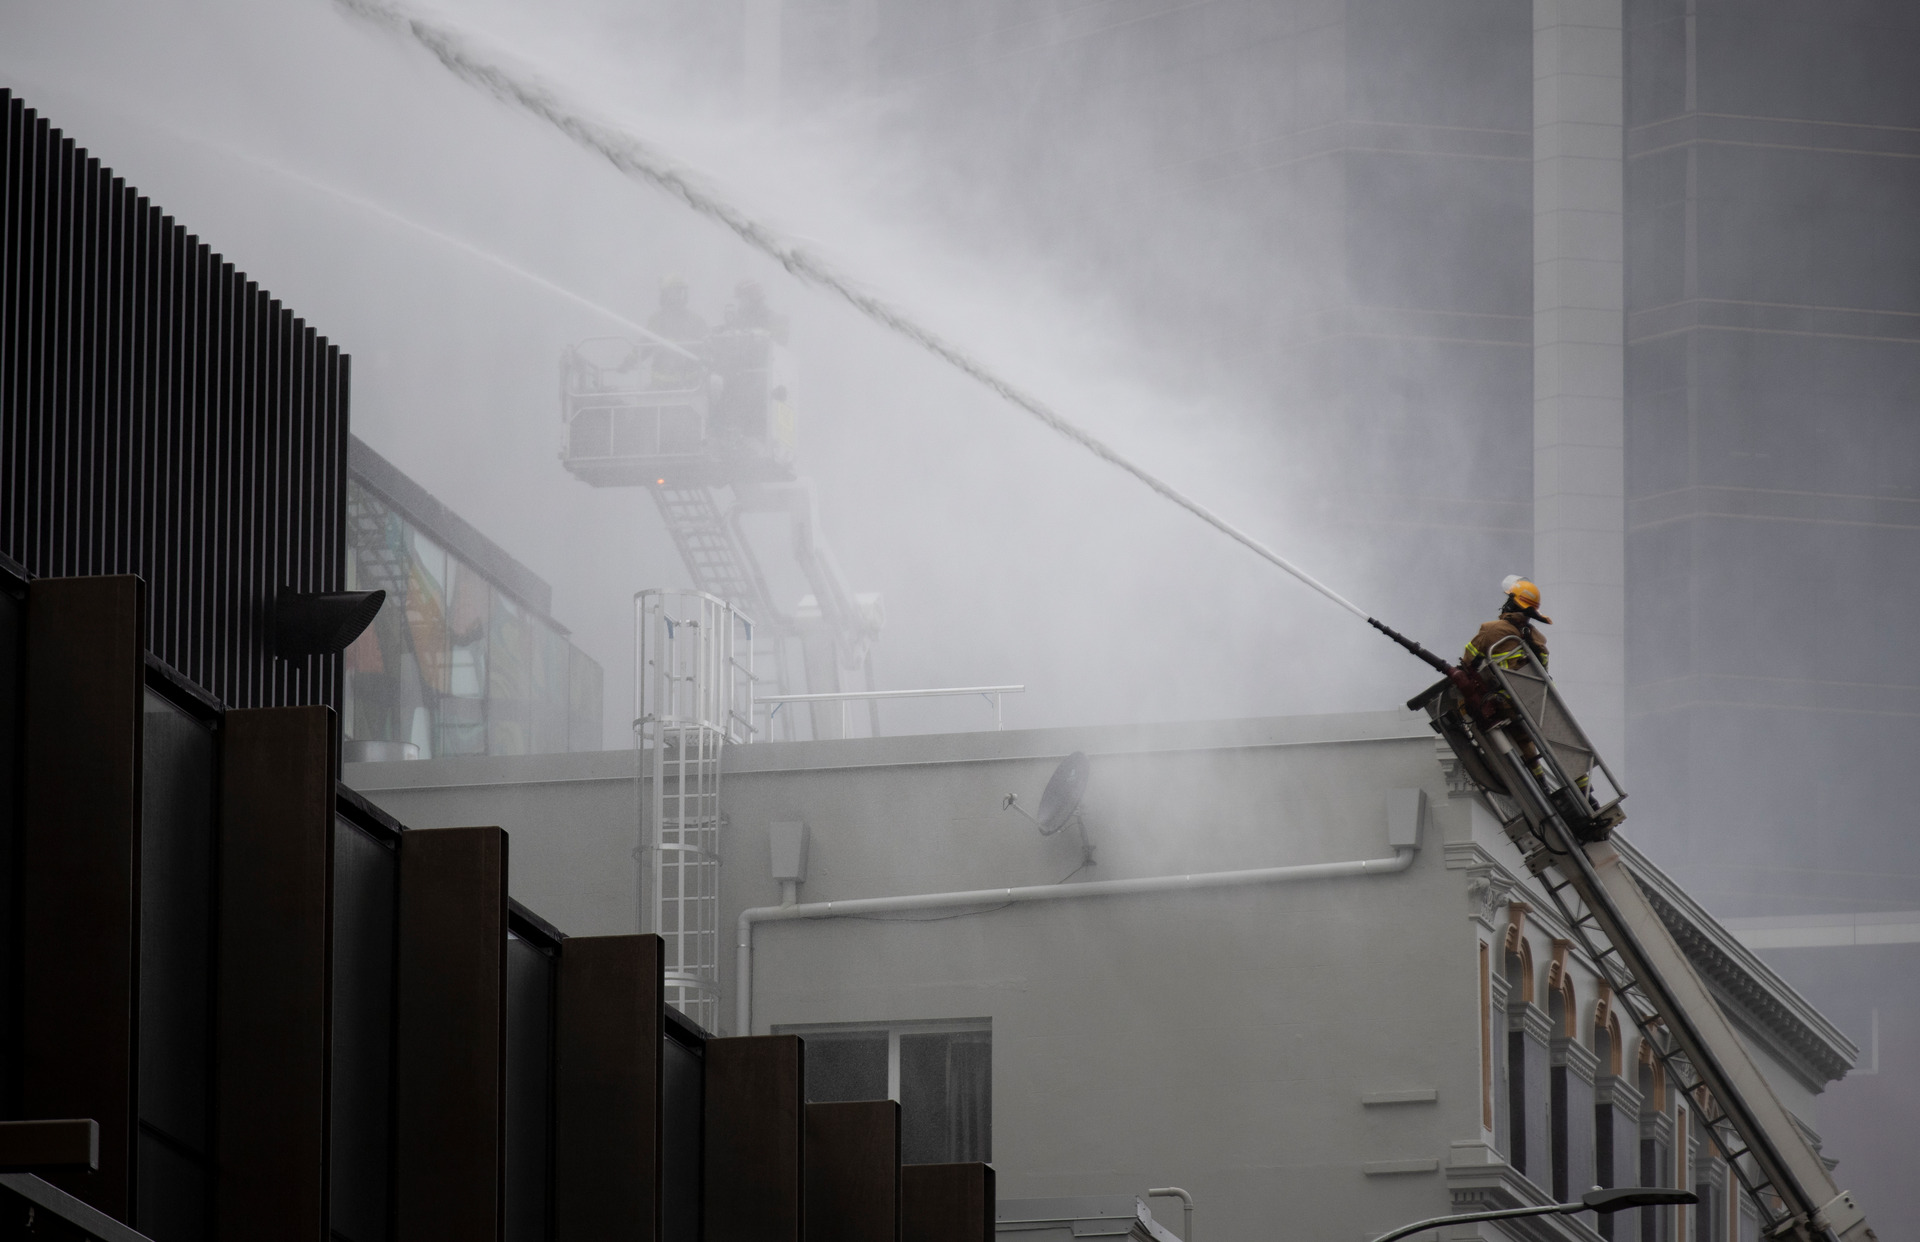 SkyCity fire: Should have been out in two hours - union